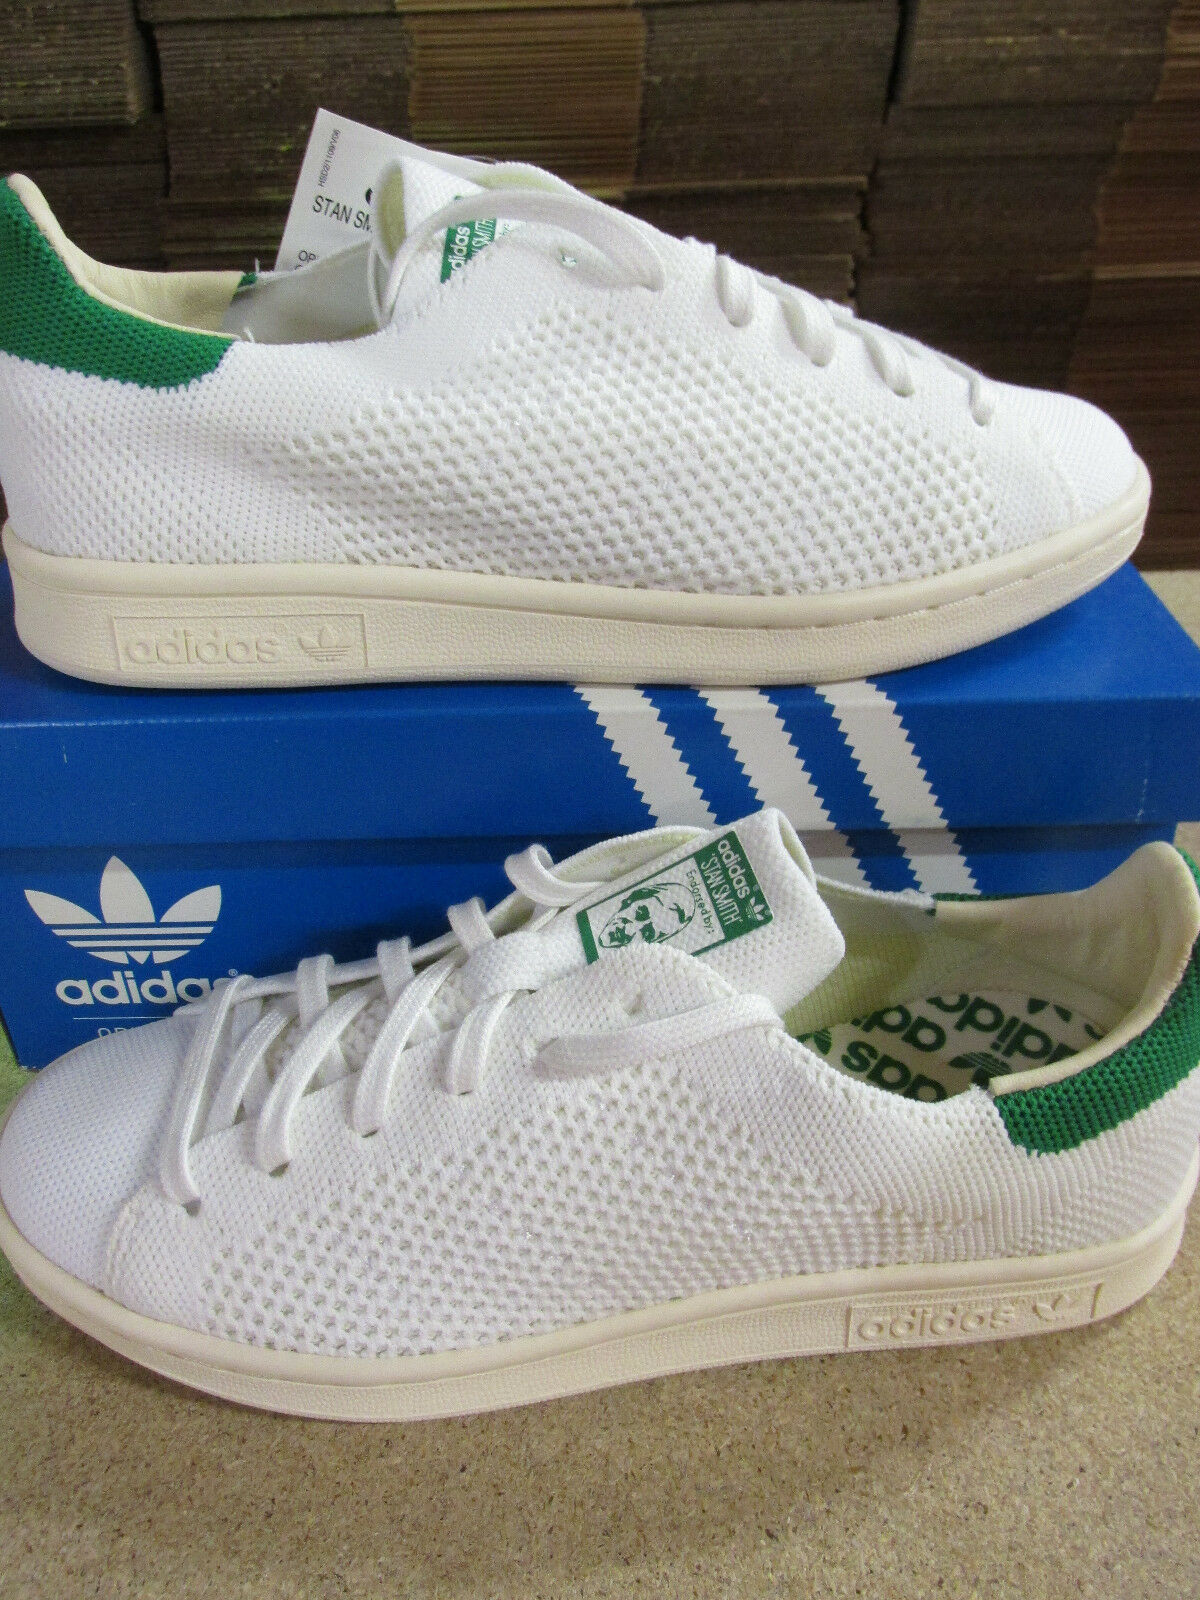 Adidas Originals Stan Smith OG PK Primeknit Homme Trainers S75146 Sneakers Chaussures